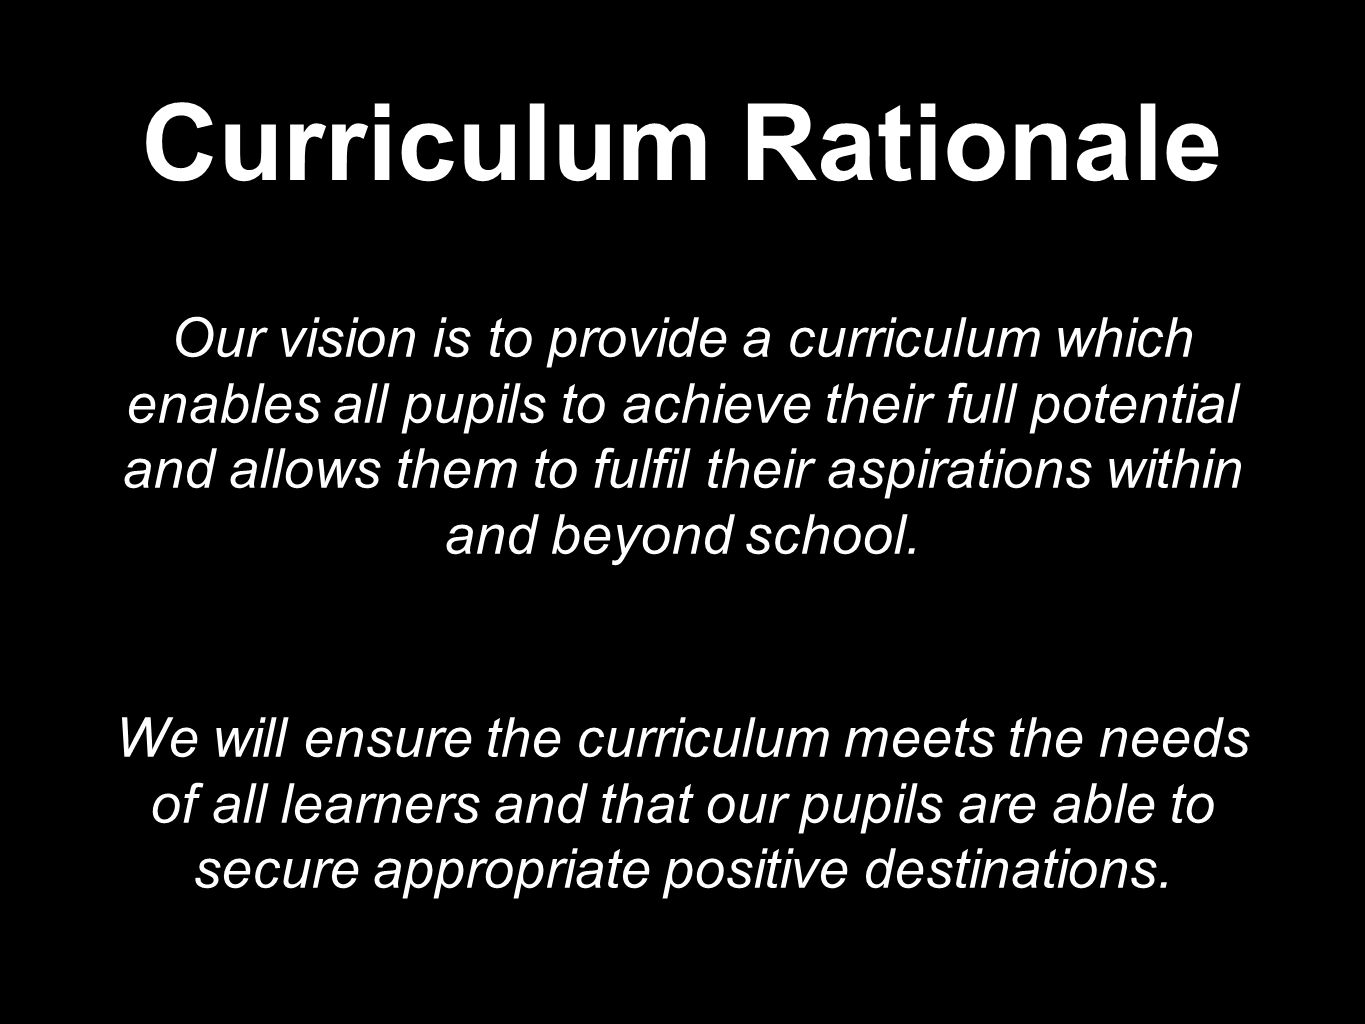 Curriculum Rationale Our vision is to provide a curriculum which enables all pupils to achieve their full potential and allows them to fulfil their aspirations within and beyond school.